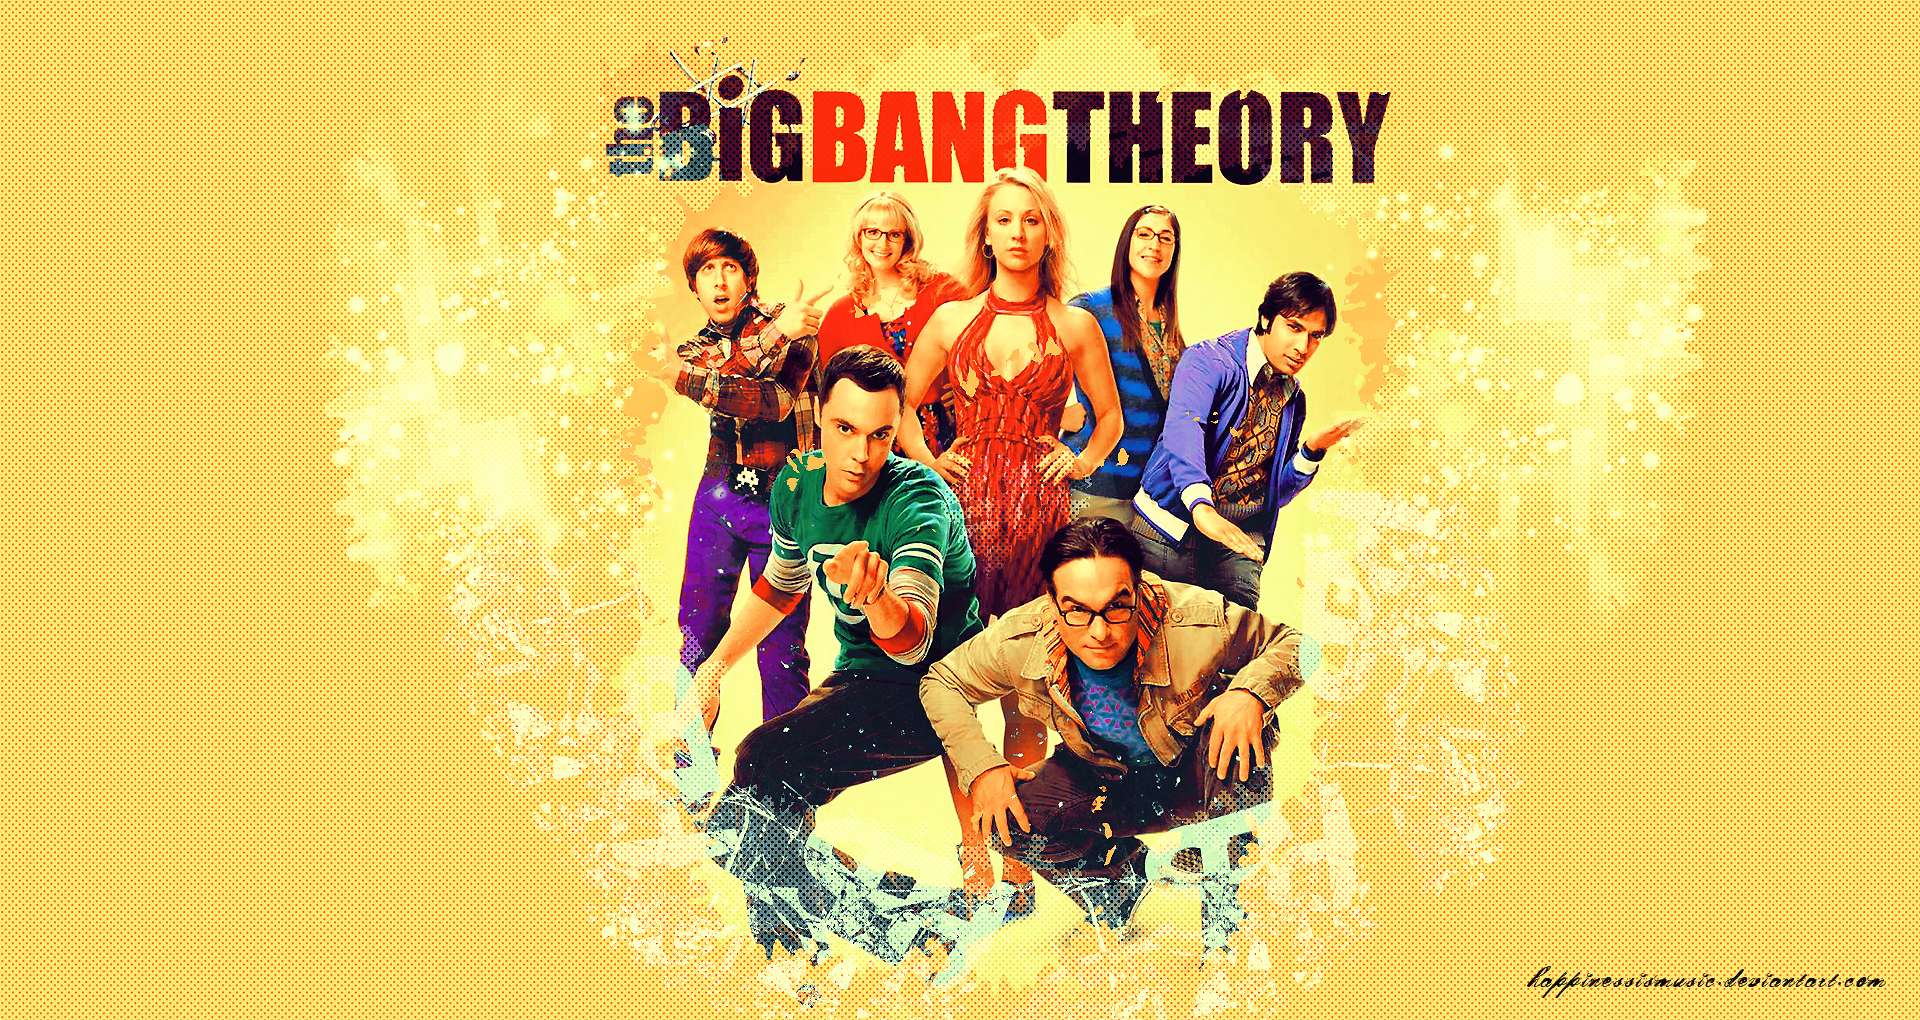 The big bang theory wallpaper 4 by HappinessIsMusic on DeviantArt